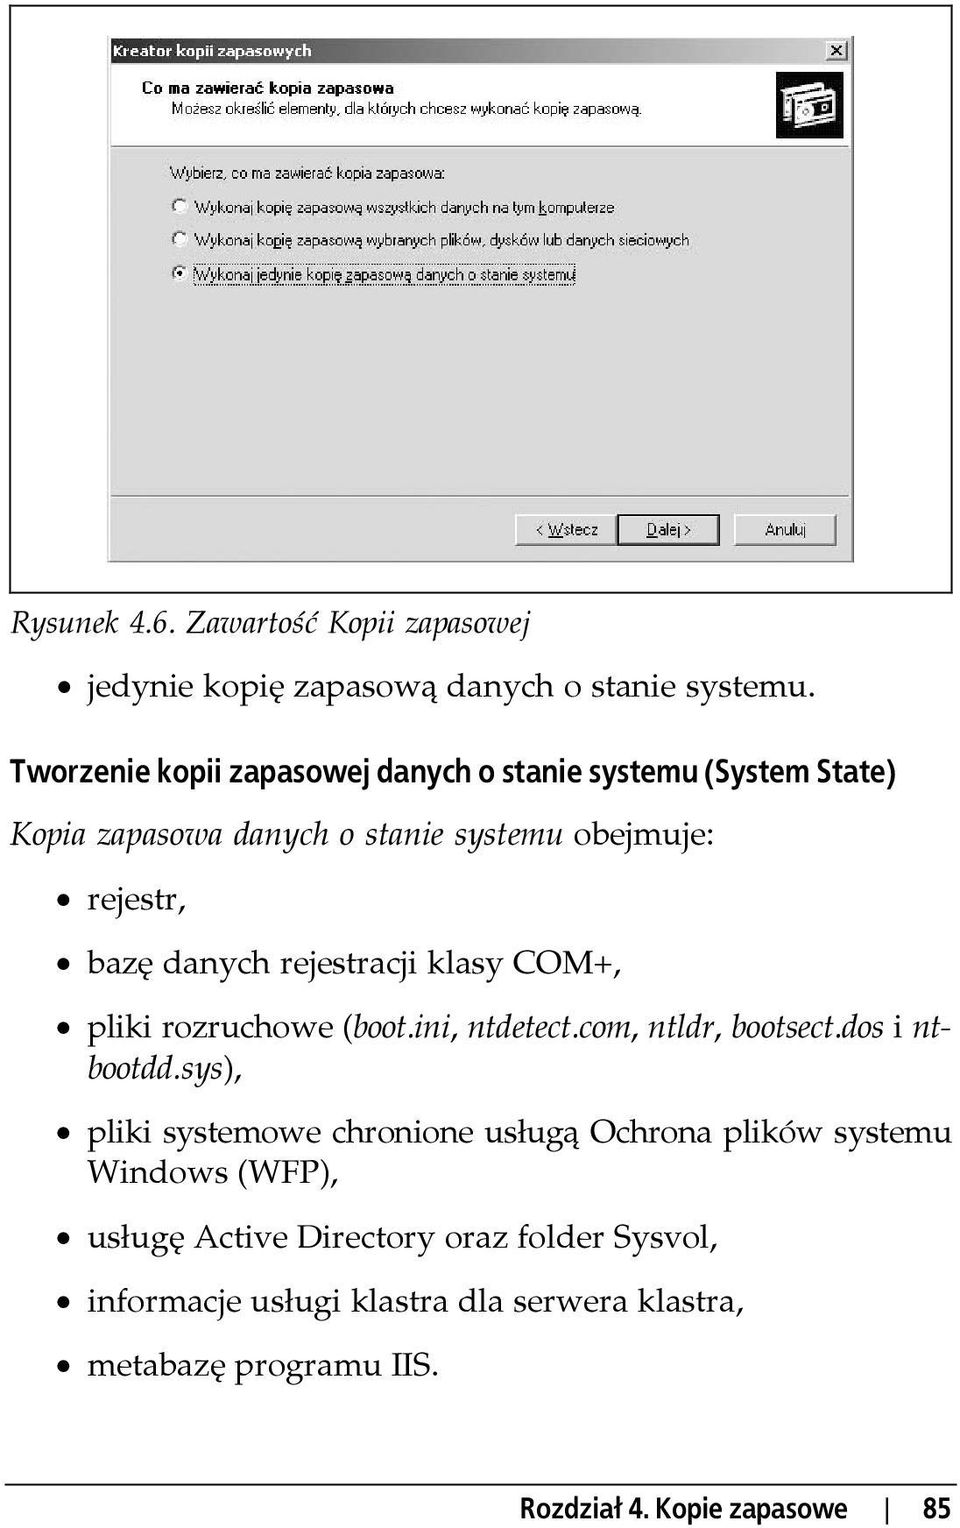 rejestracji klasy COM+, pliki rozruchowe (boot.ini, ntdetect.com, ntldr, bootsect.dos i ntbootdd.